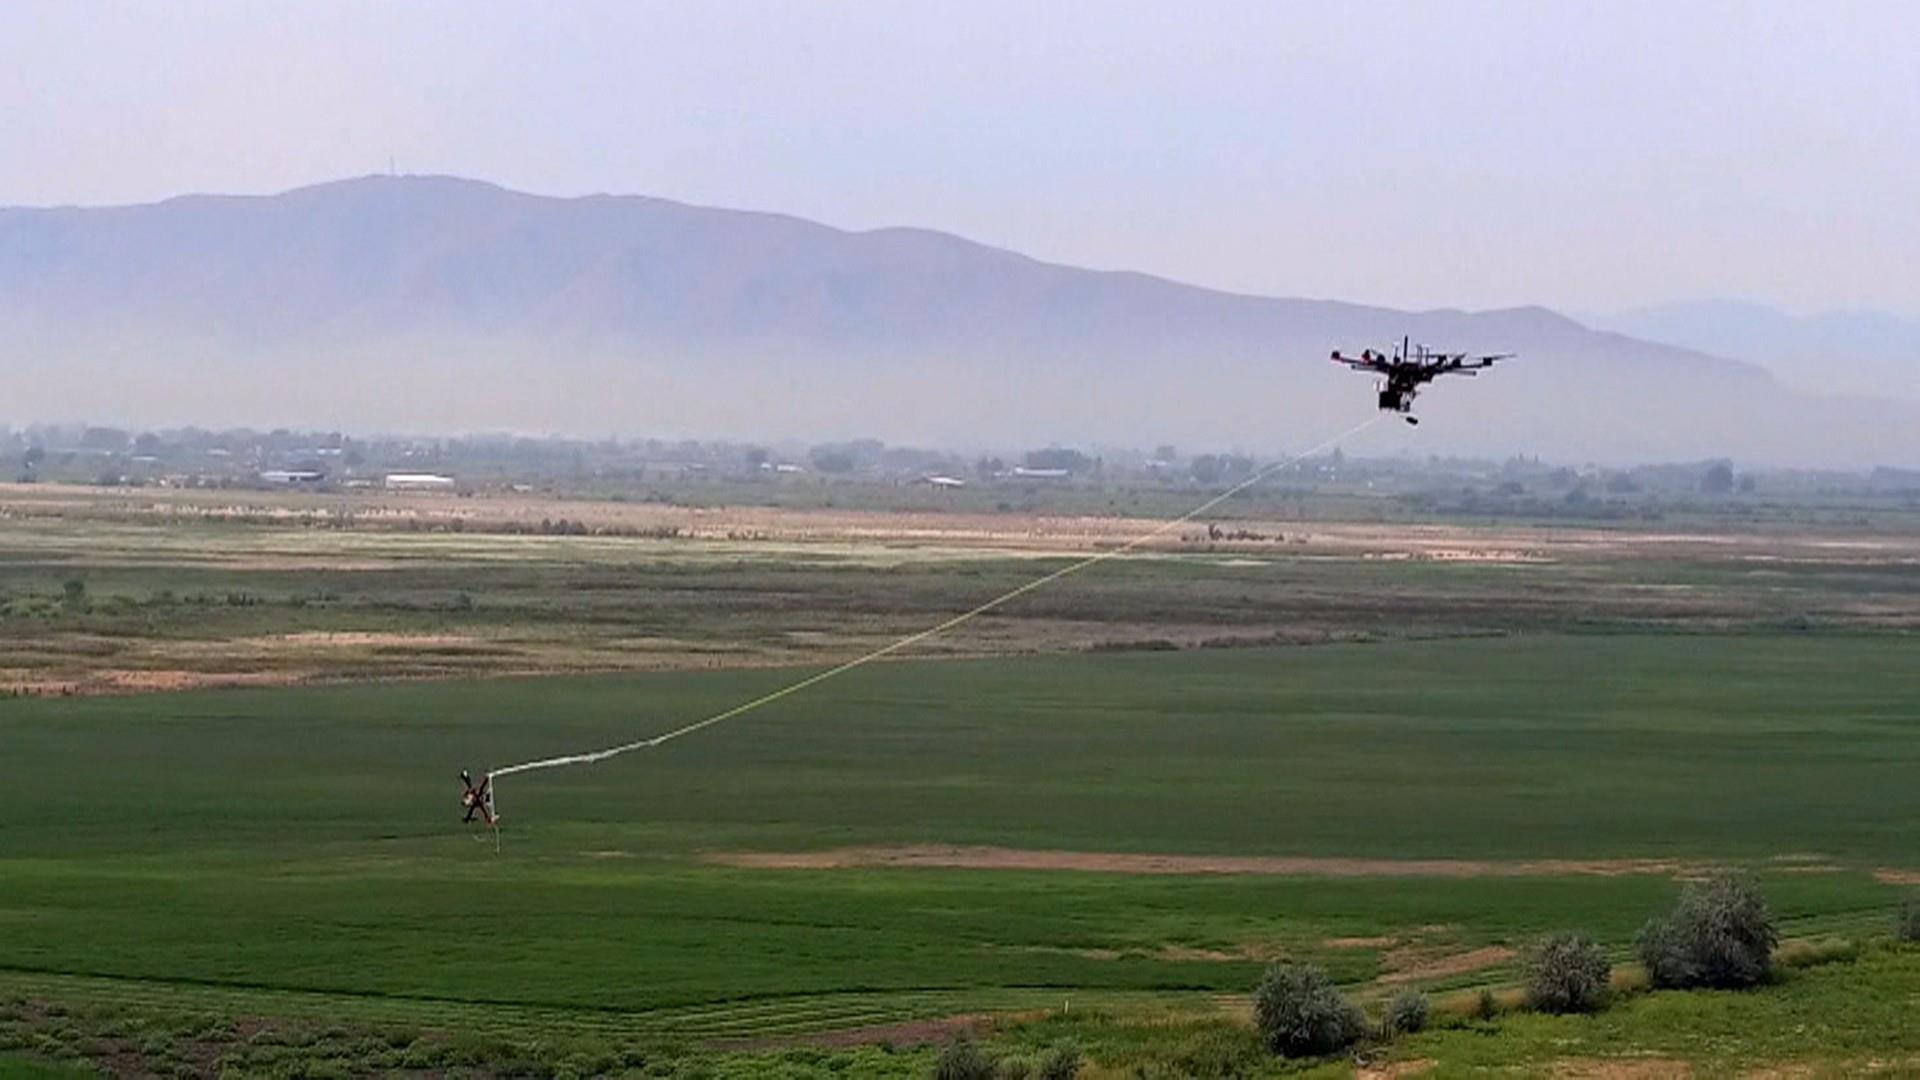 New law would give federal government the right to shoot down private drones inside U.S.